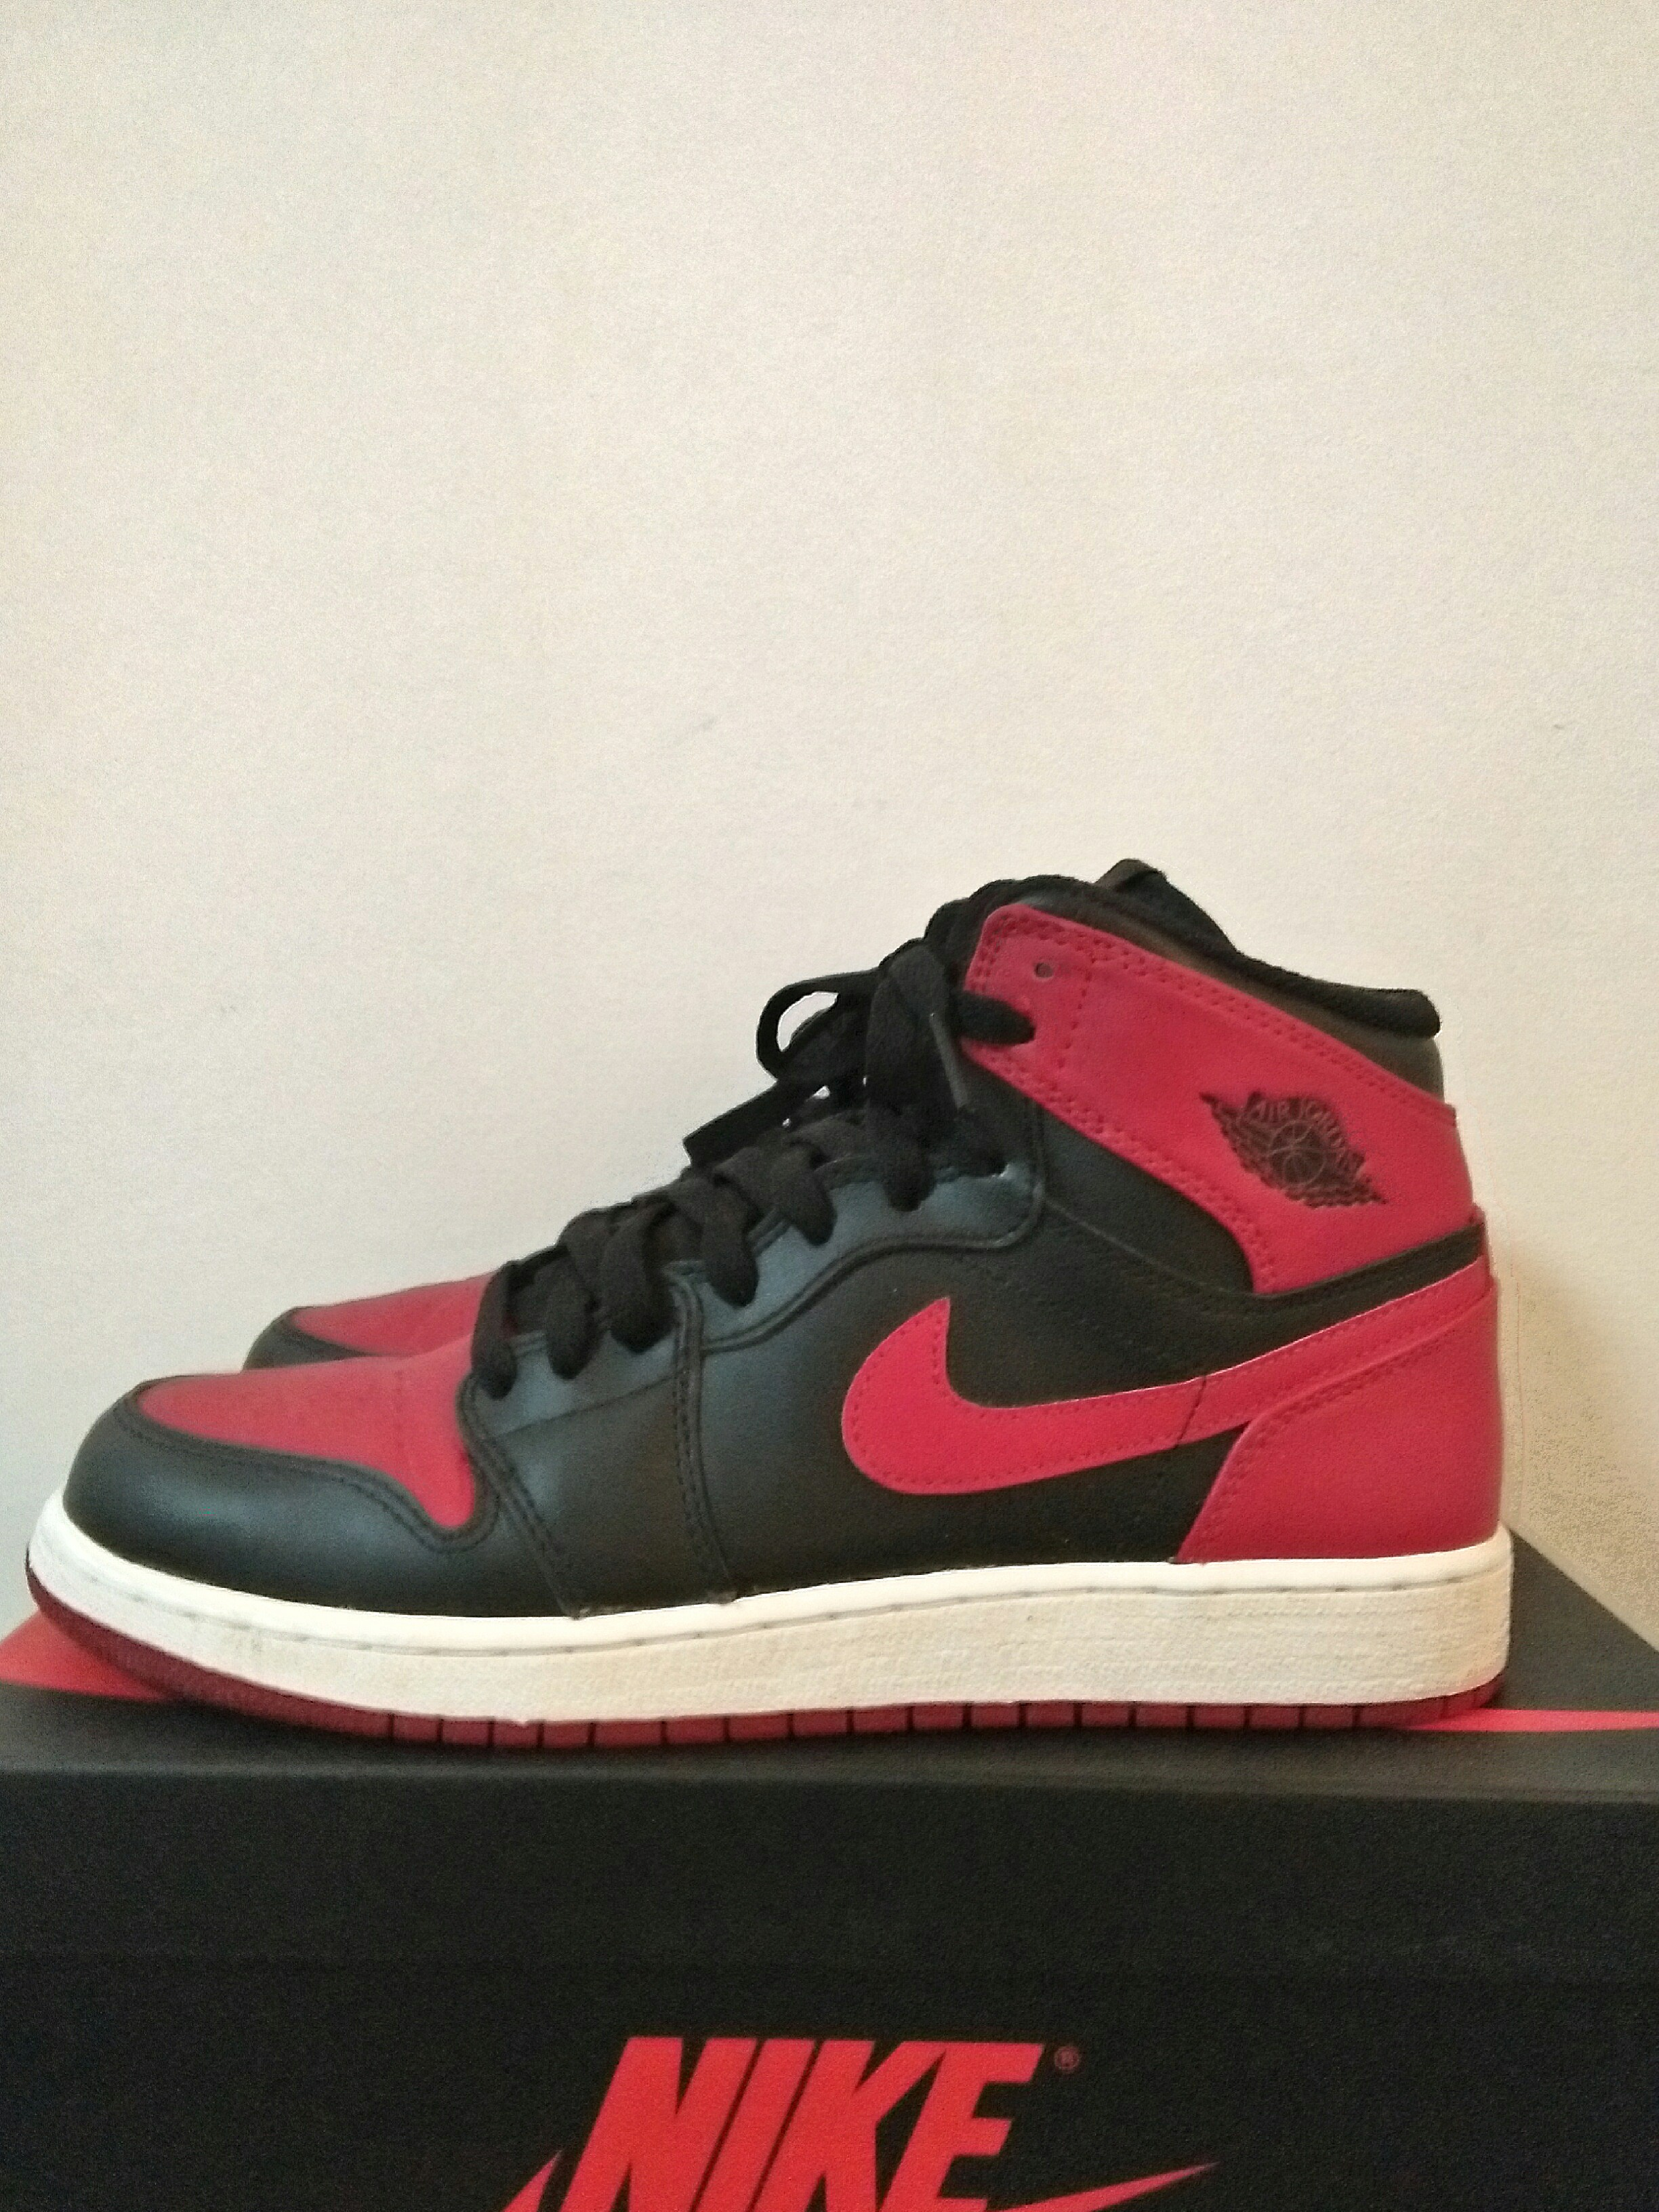 Us 7 Nike Air Jordan 1 Rerto High OG breds 2013 Gs c552ad084